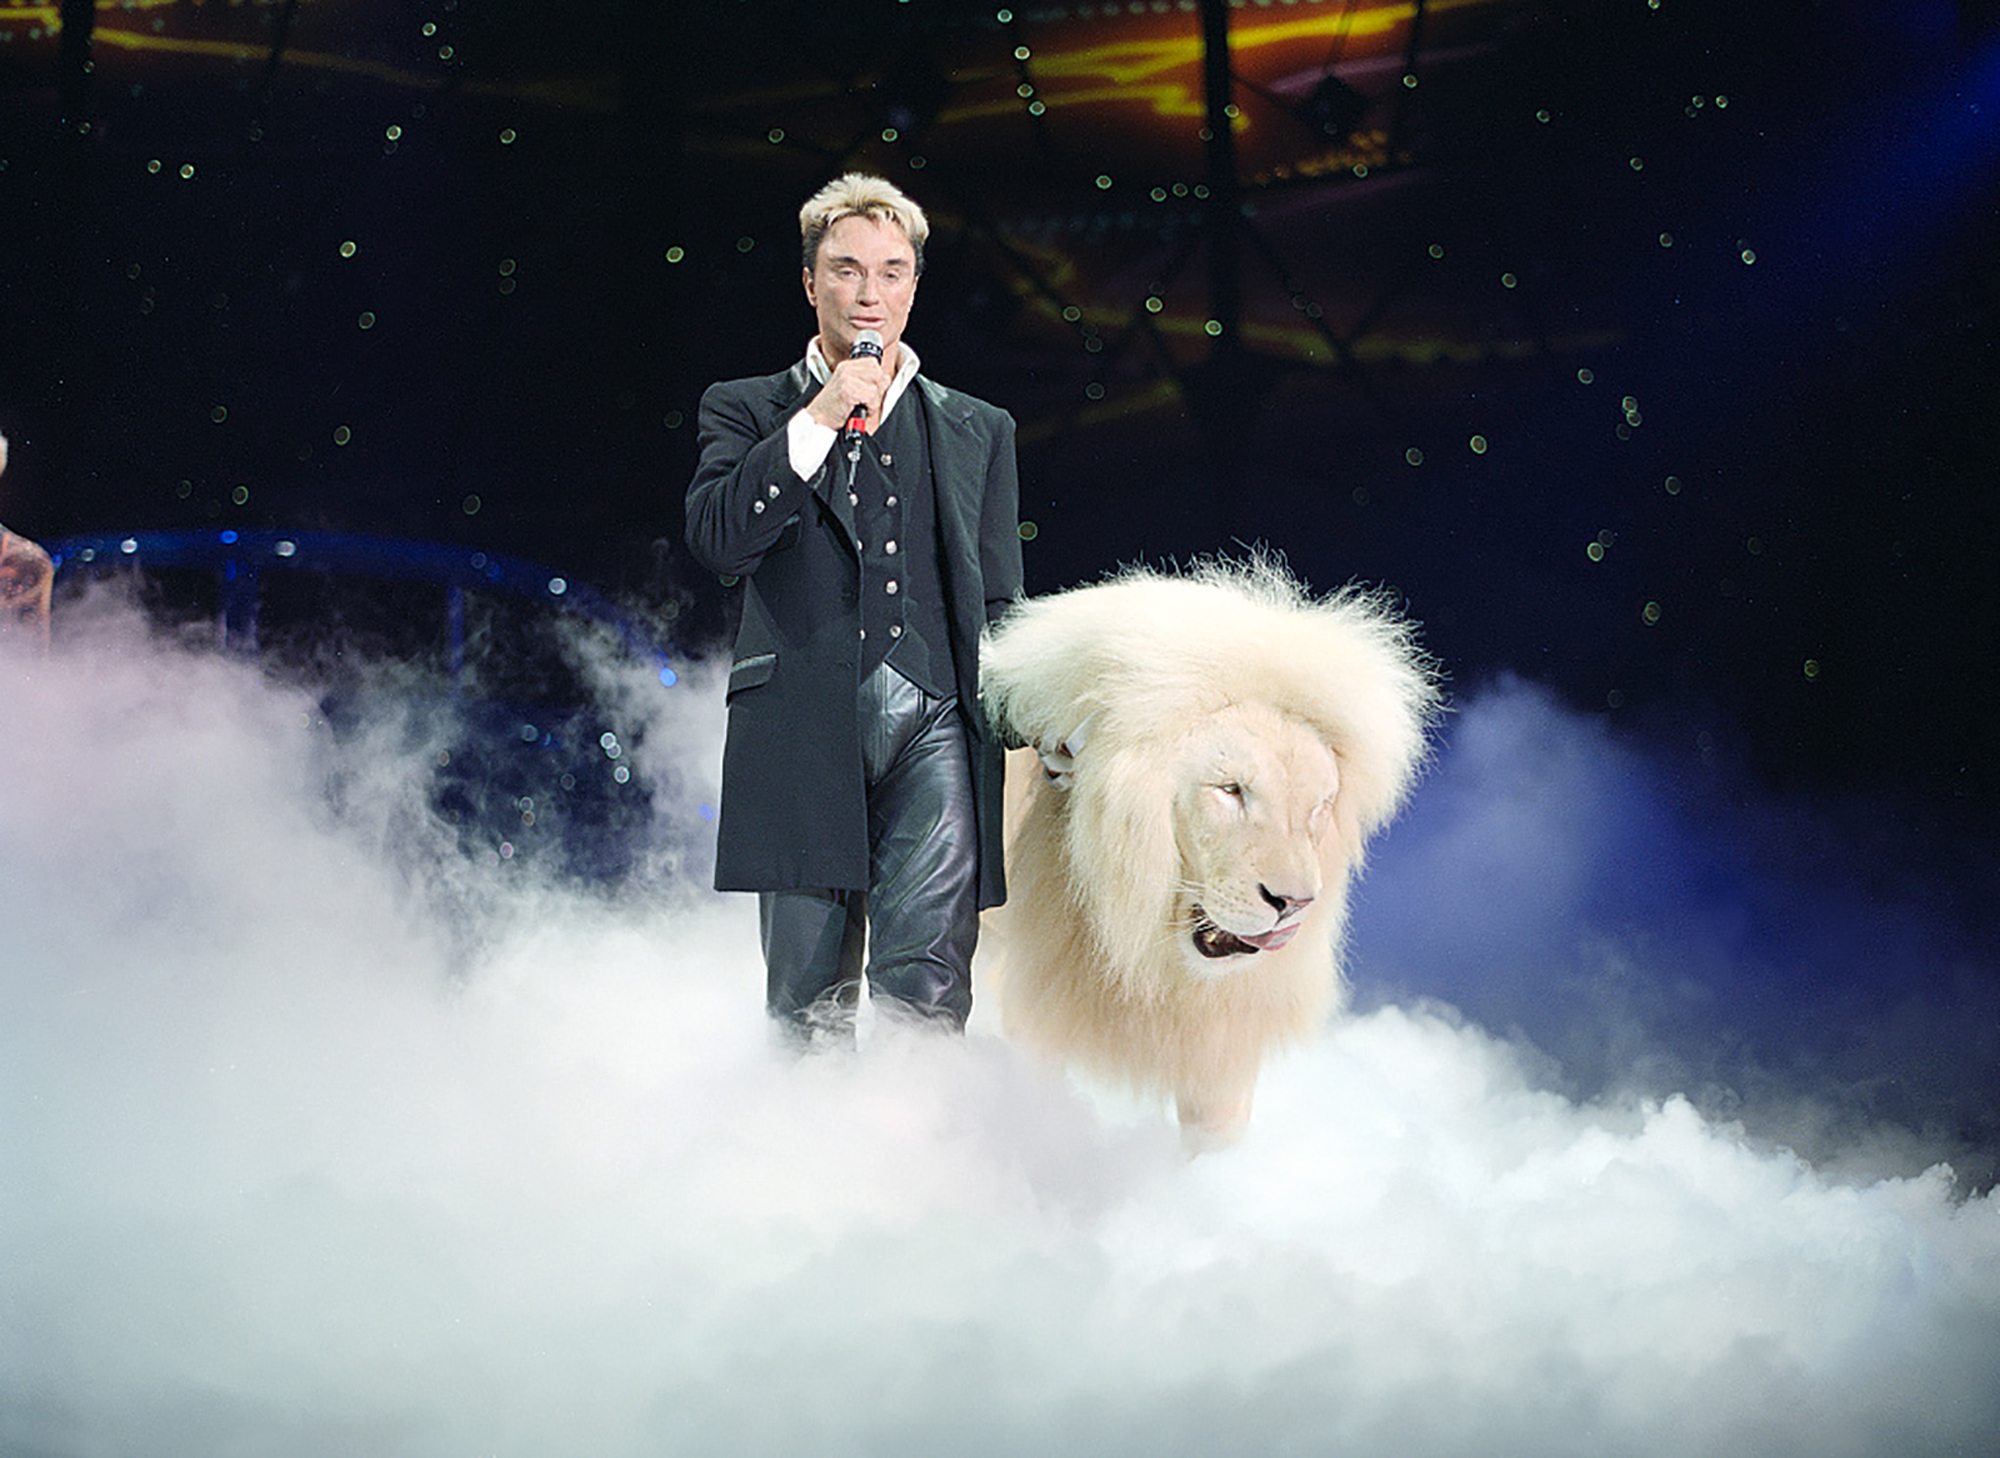 Roy Horn, of the illusionist pair Siegfried and Roy, at the Mirage Hotel in Las Vegas, Nevada, in 2003.